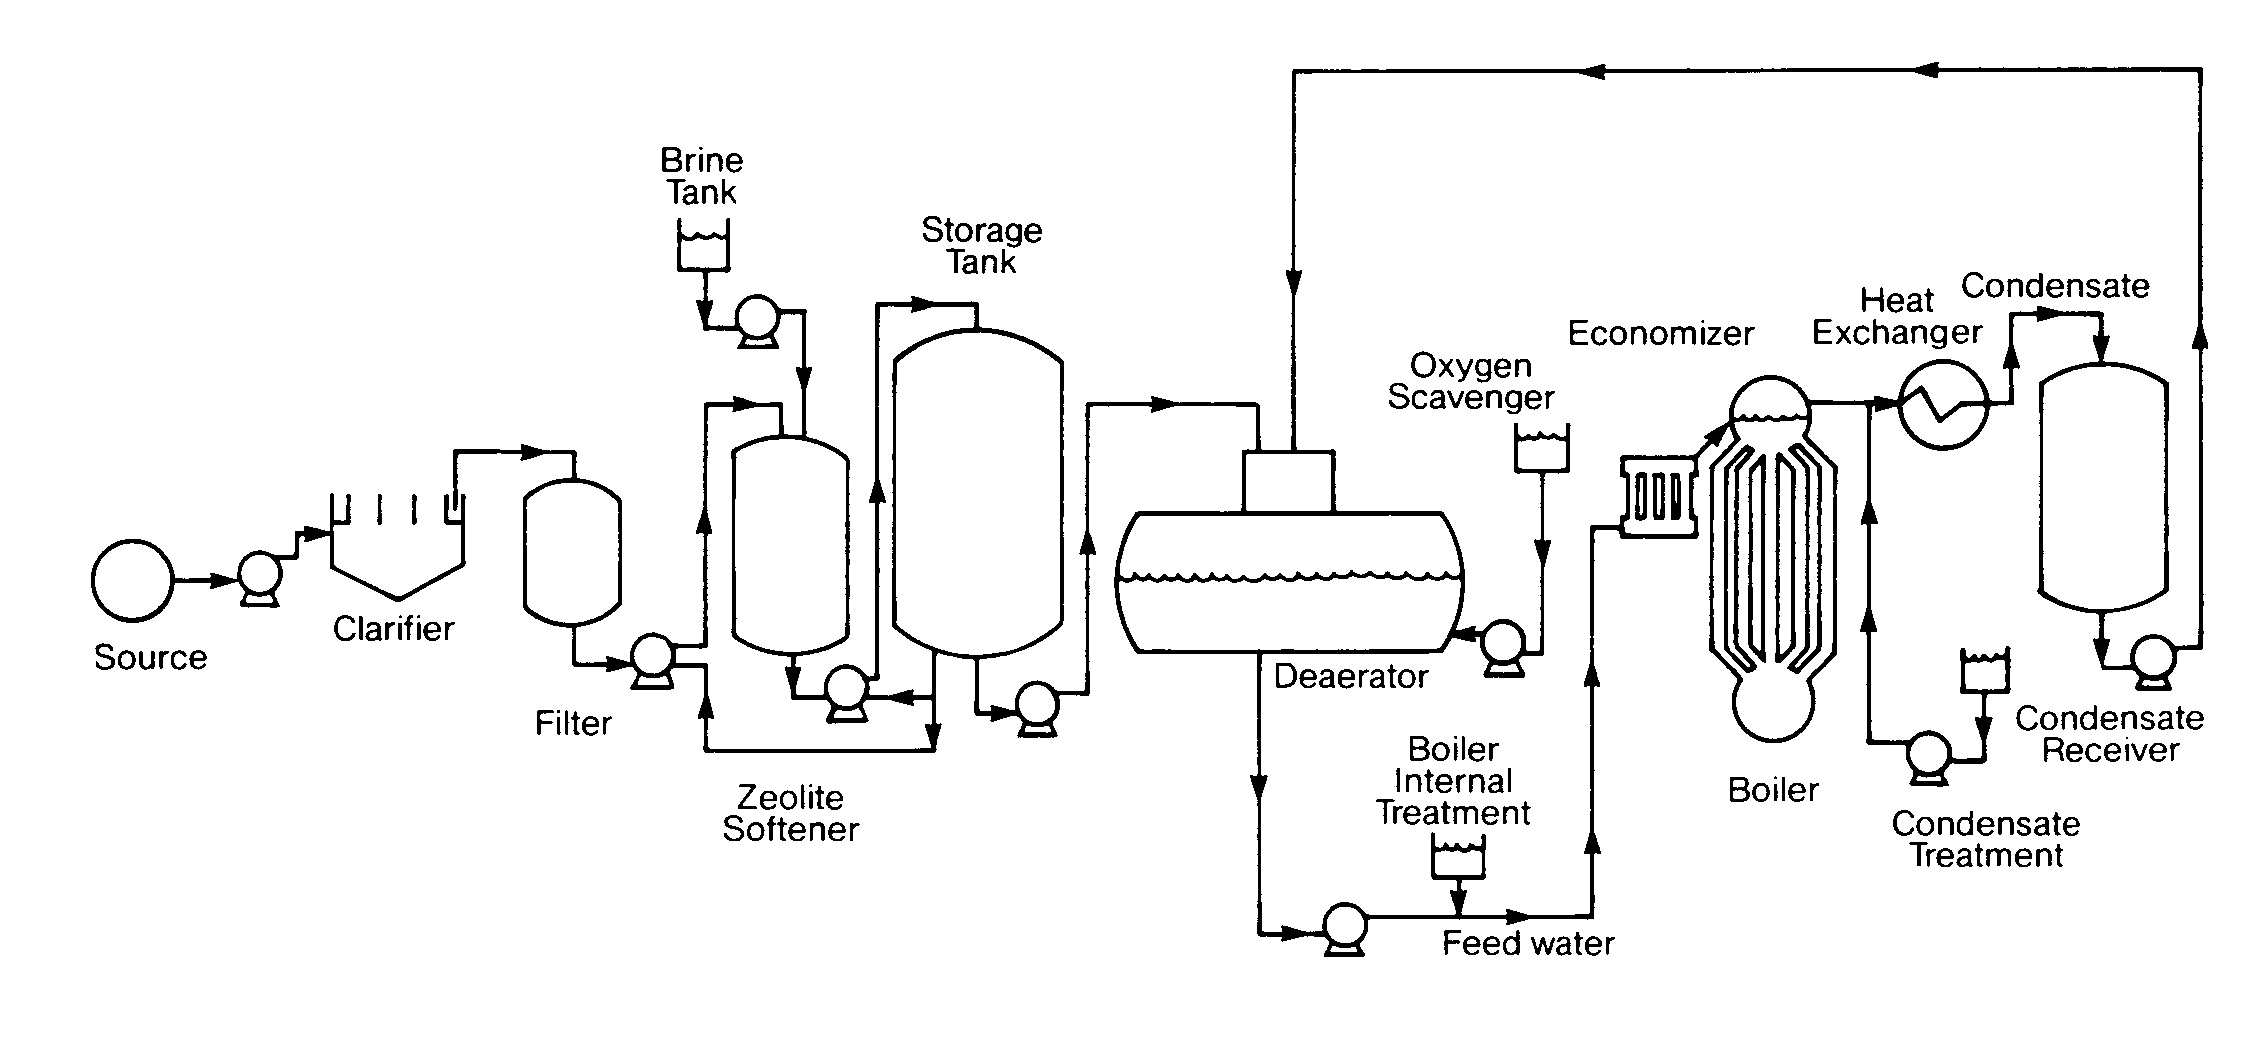 Boiler Process Flow Diagram Example Great Installation Of Wiring Guide Gc3 Specialty Chemicals Gc Technical Manual Water Rh Com Refinery Pid